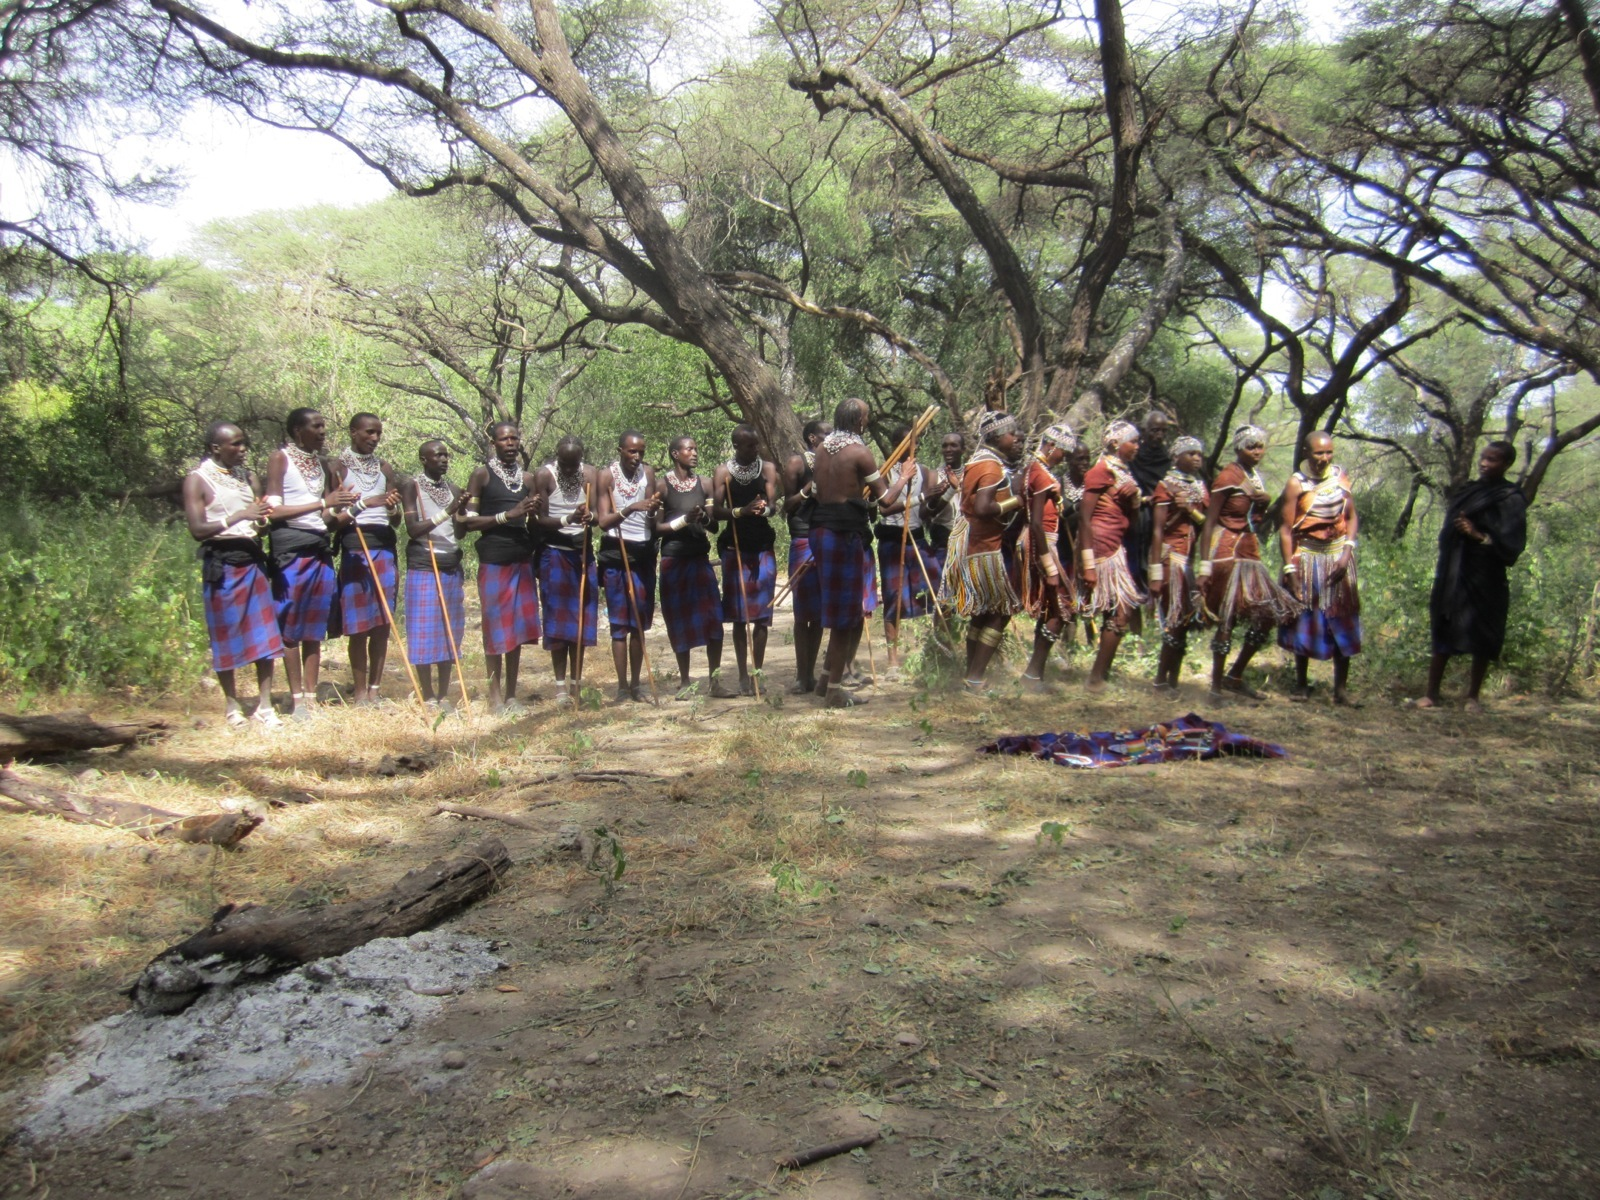 A group of Maasai people wearing Shuka, traditional red and blue plaid skirts, and beaded jewelry.